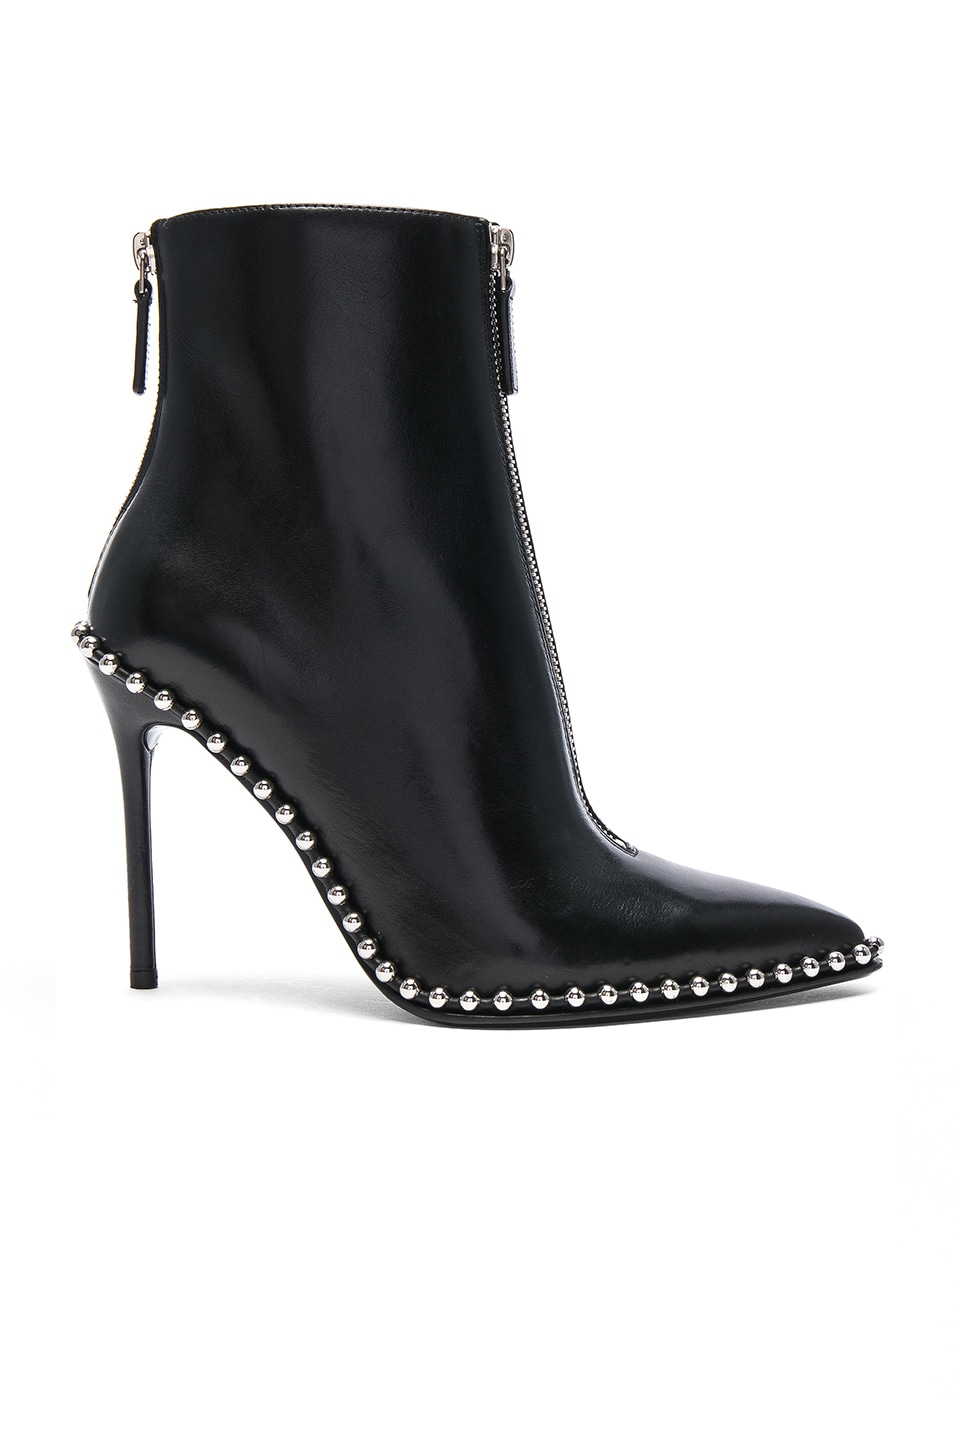 Image 1 of Alexander Wang Leather Eri Boots in Black